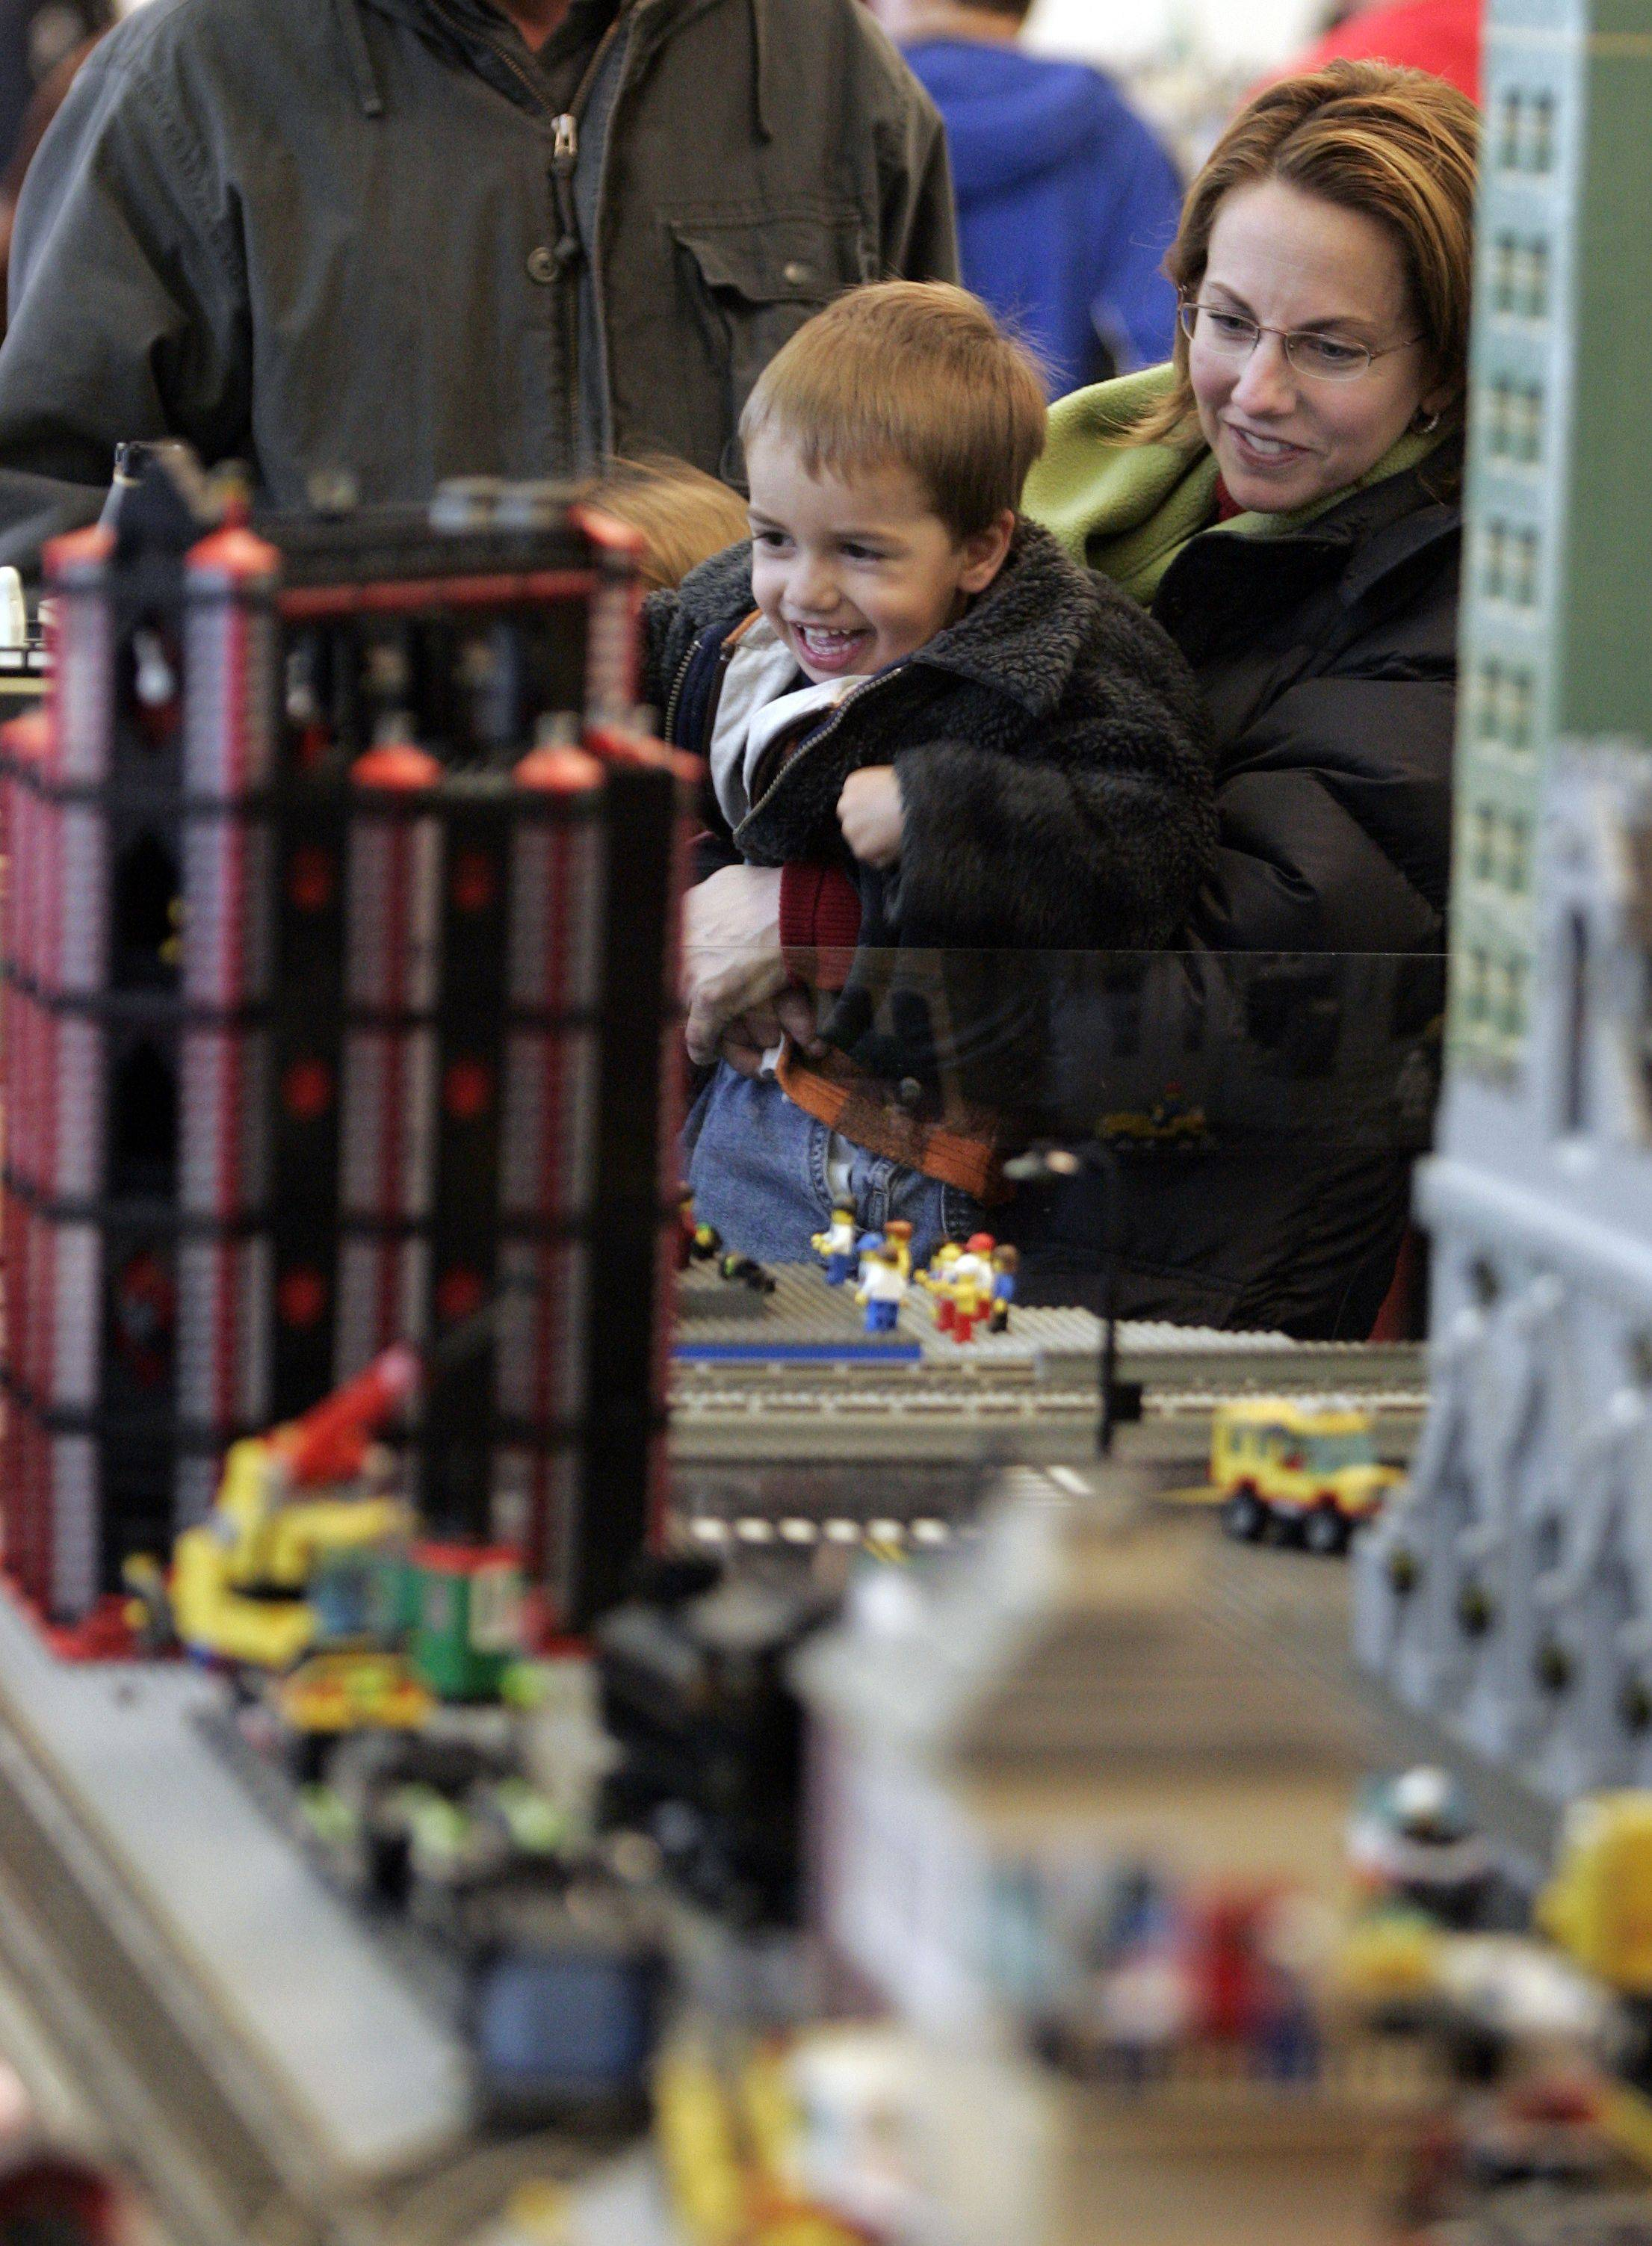 While children might just be happy to see the Legos and trains, adults are sure to find something humorous in the plastic brick world the Northern Illinois Lego Train Club creates.